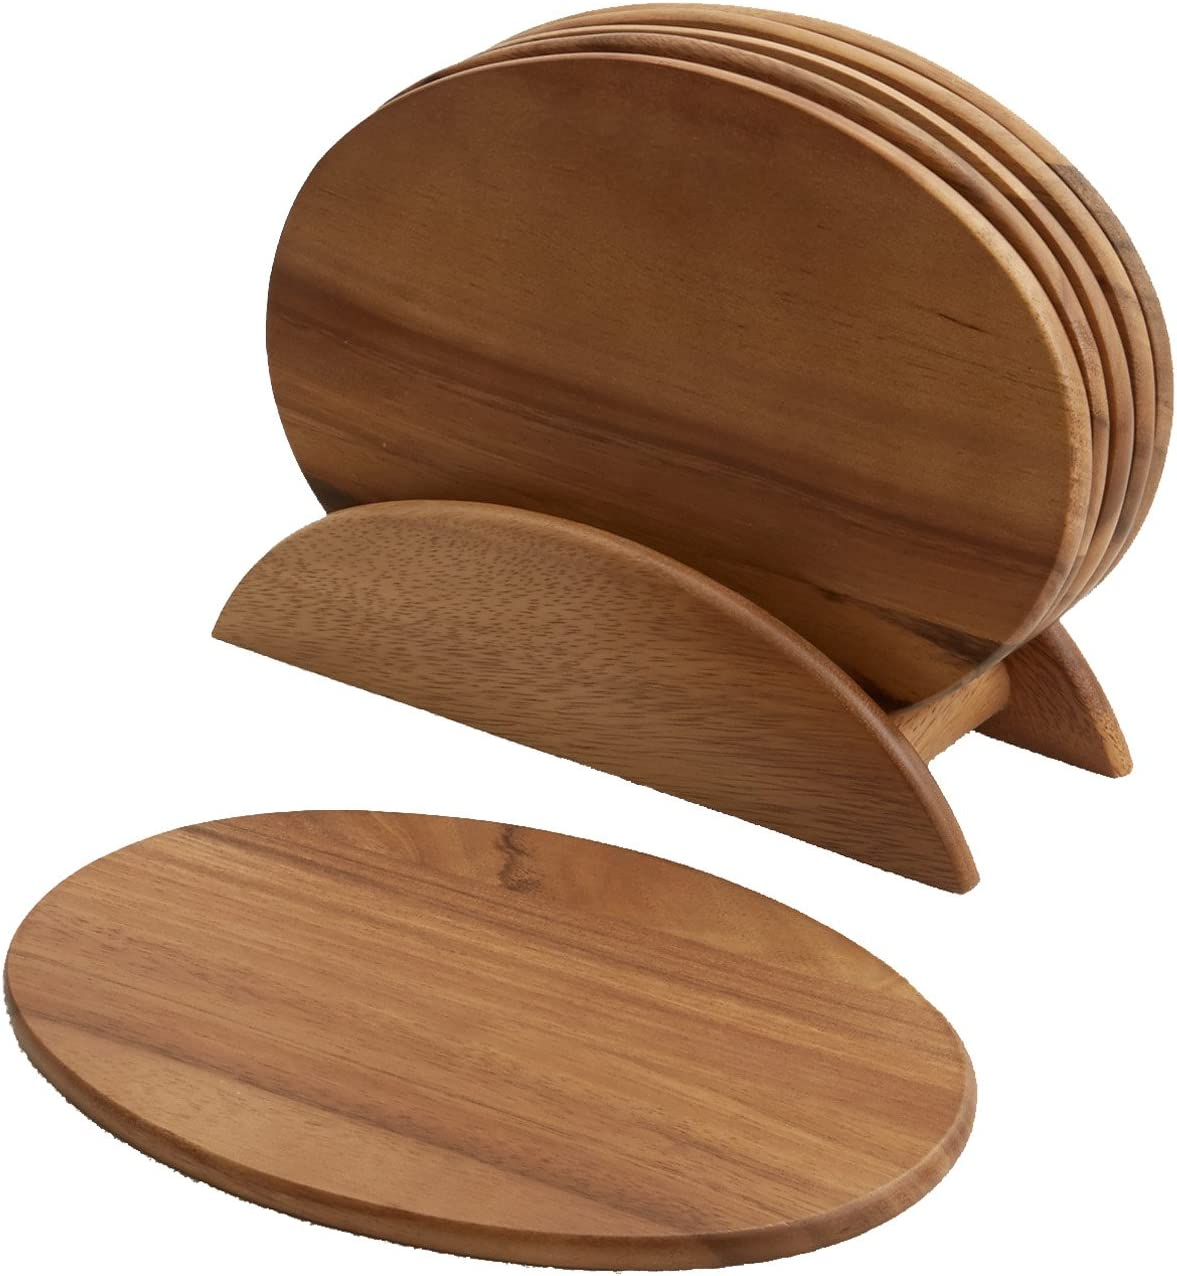 6 Acacia Wood Serving Boards with Stand, Perfect for Serving, Sushi, Cheese, Hors d'oeuvre, Charcuterie, Sandwiches by Woodard & Charles, 7 Piece Set, 9 1/2